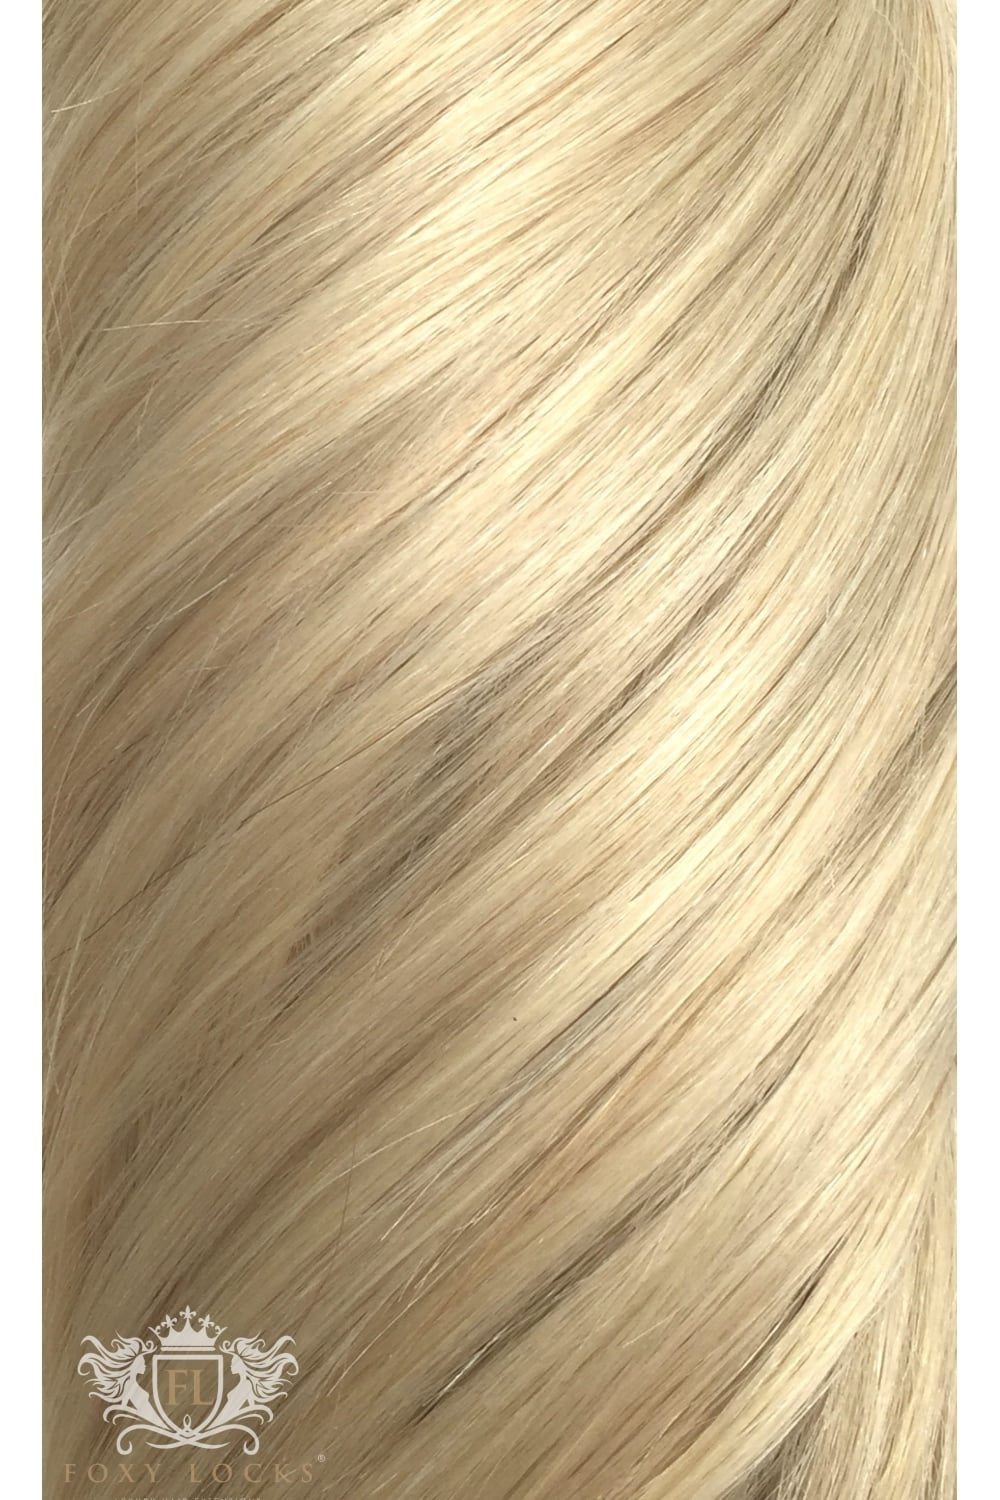 Hollywood Blonde Seamless Deluxe 20 Clip In Human Hair Extensions